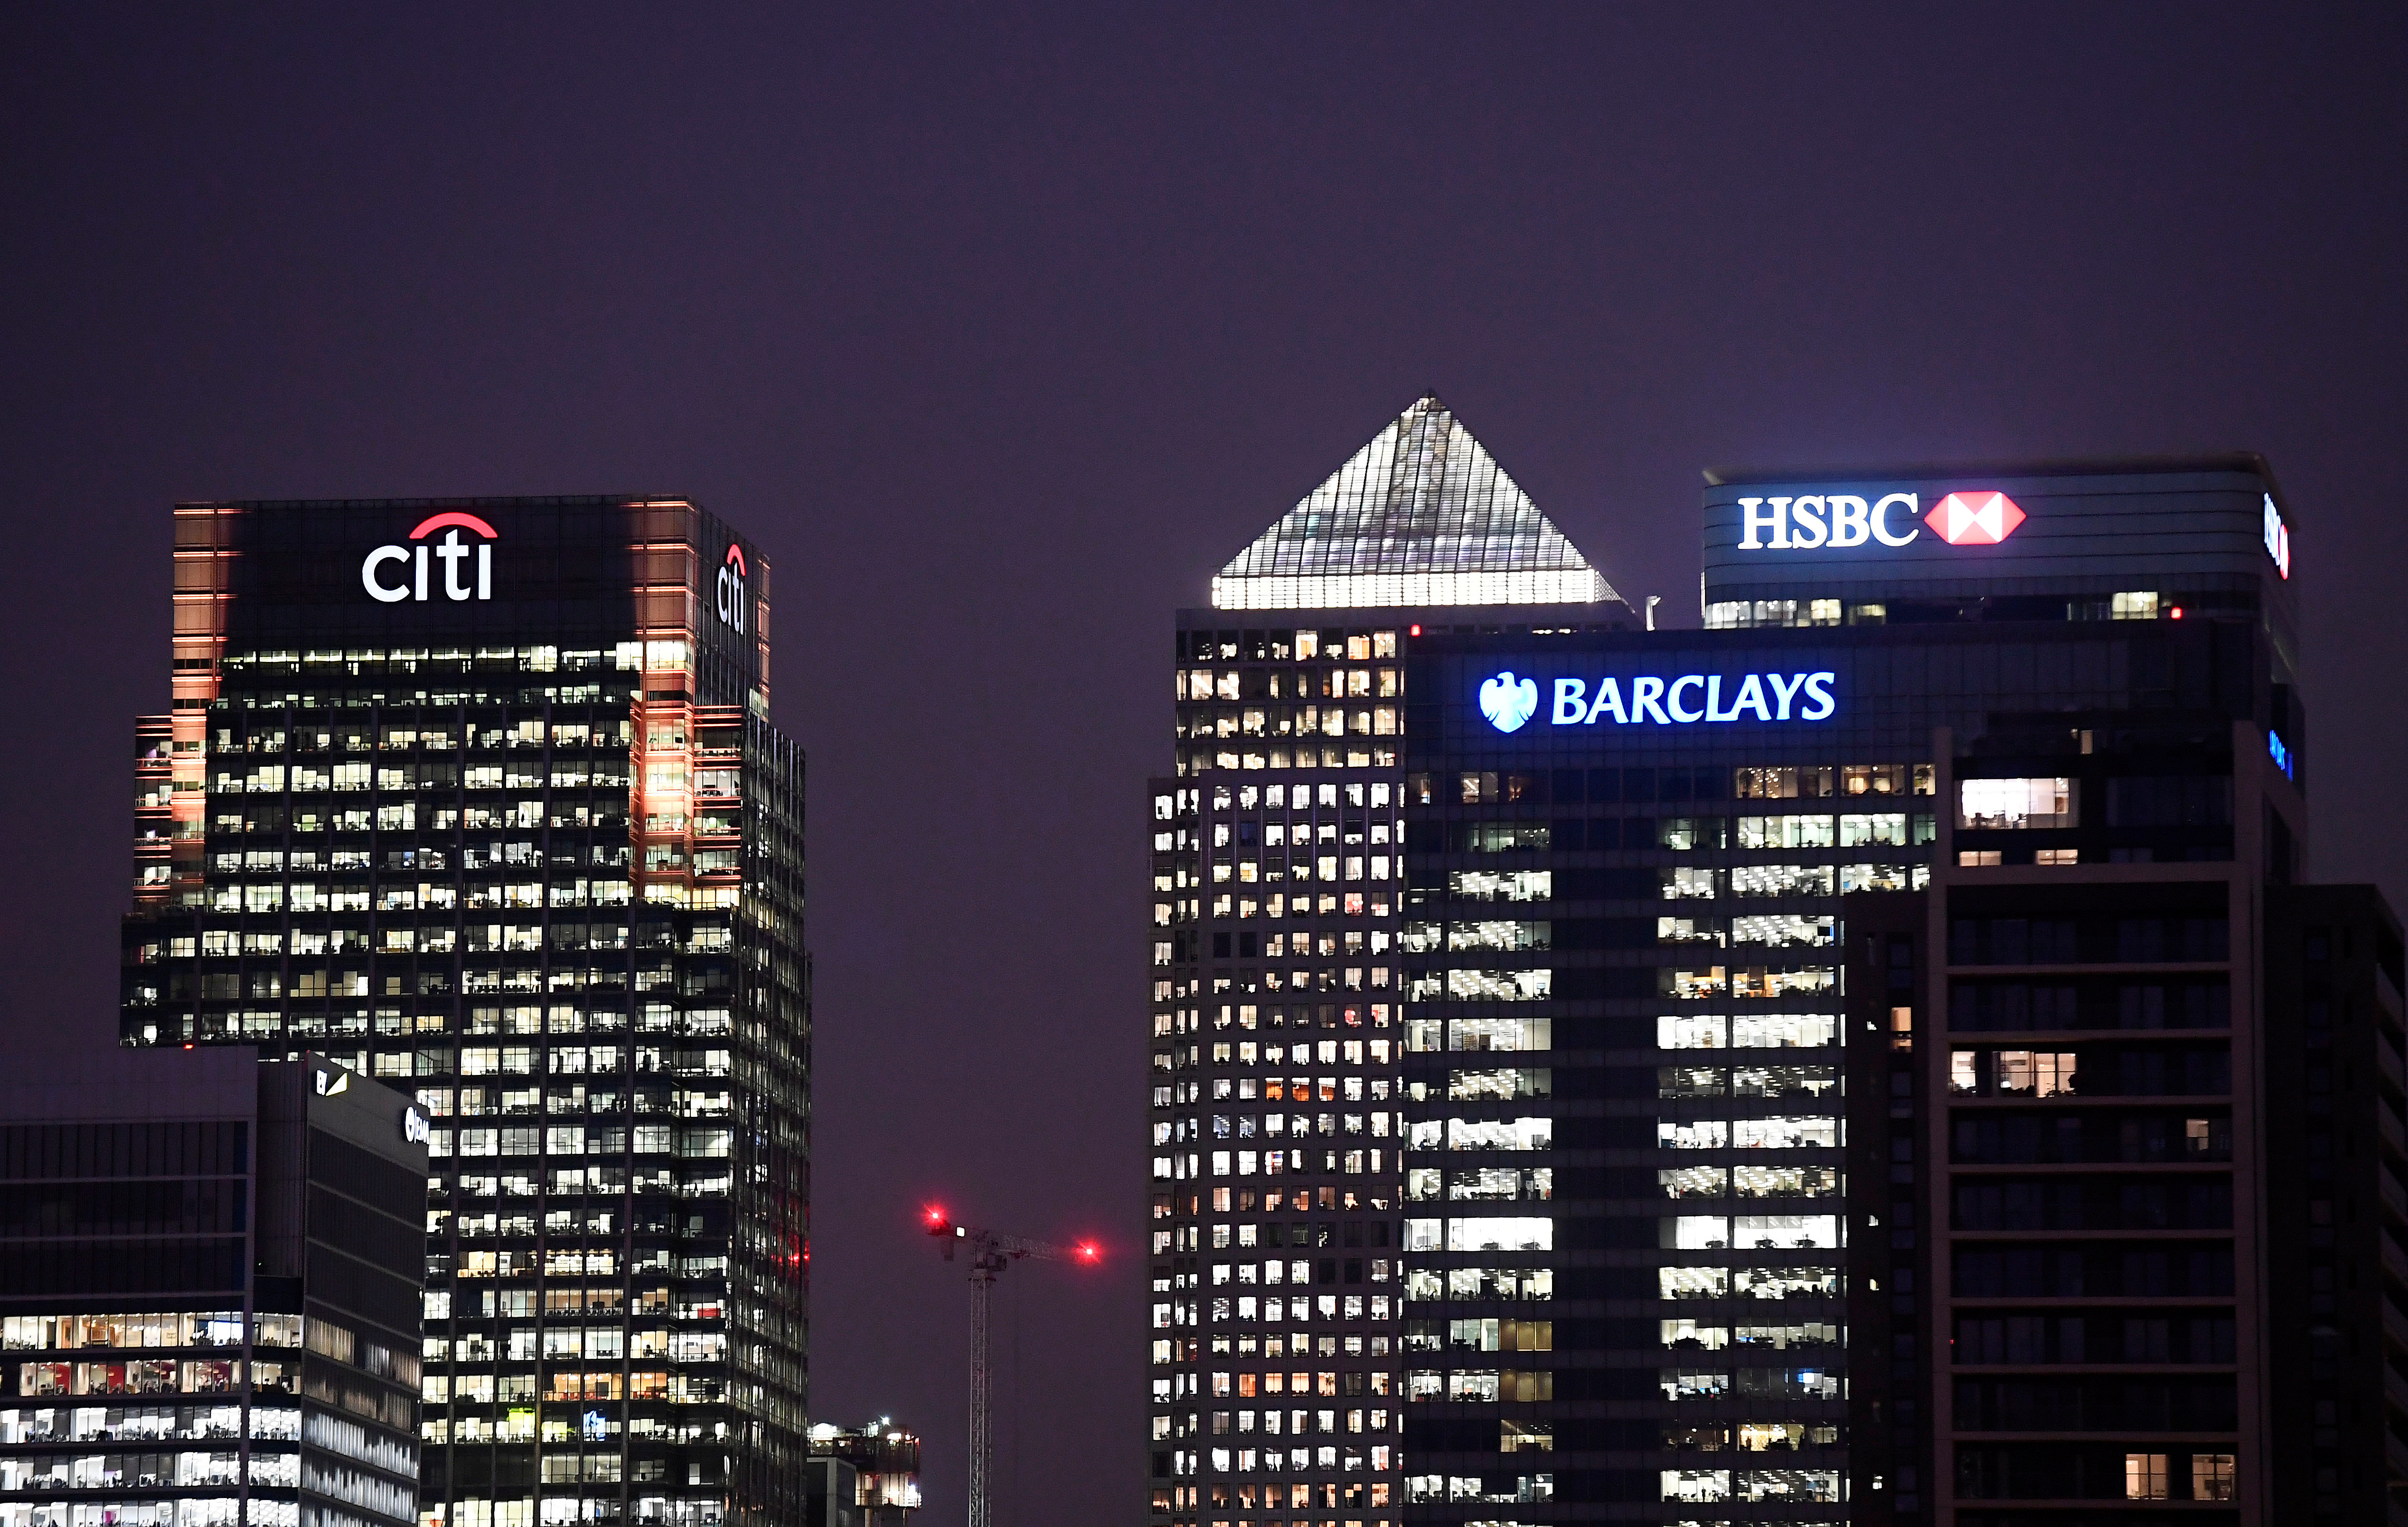 Office blocks of Citi, Barclays, and HSBC banks are seen at dusk in the Canary Wharf financial district in London, Britain November 16, 2017. REUTERS/Toby Melville - RC1813E62240